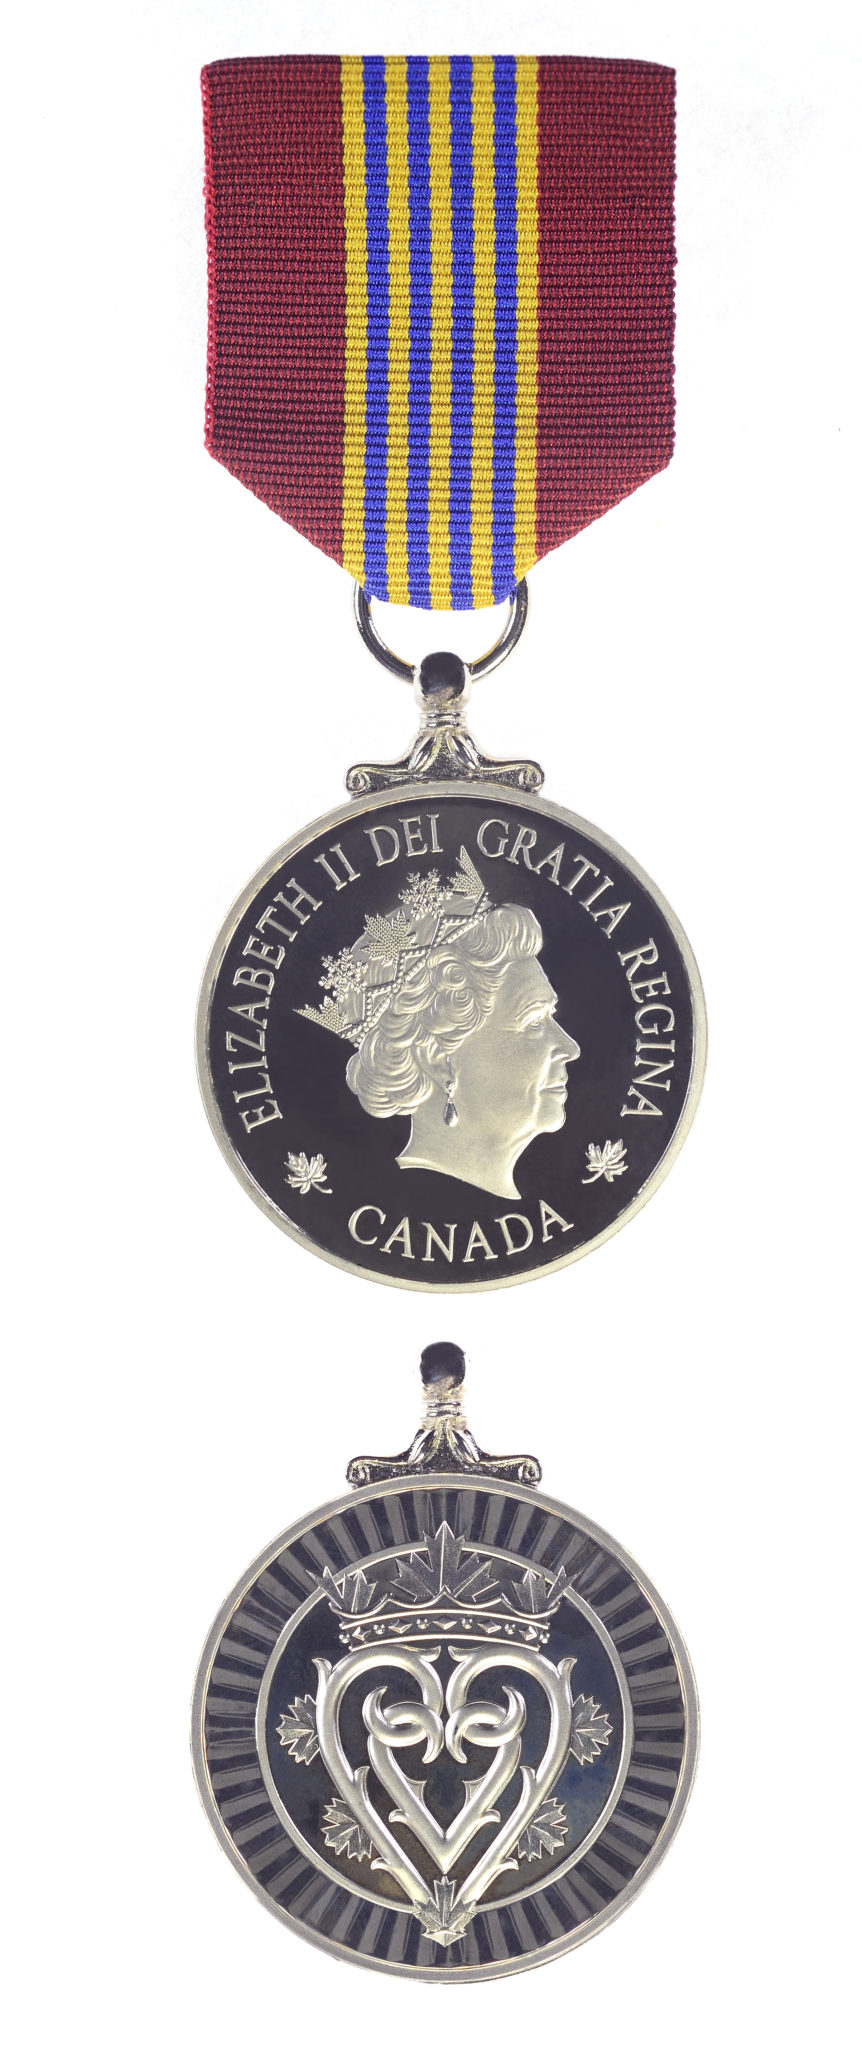 The Sovereign's Medal for Volunteers. IMAGE: www.canada.ca/en/department-national-defence/services/medals/medals-chart-index/sovereigns-medal-volunteers.html